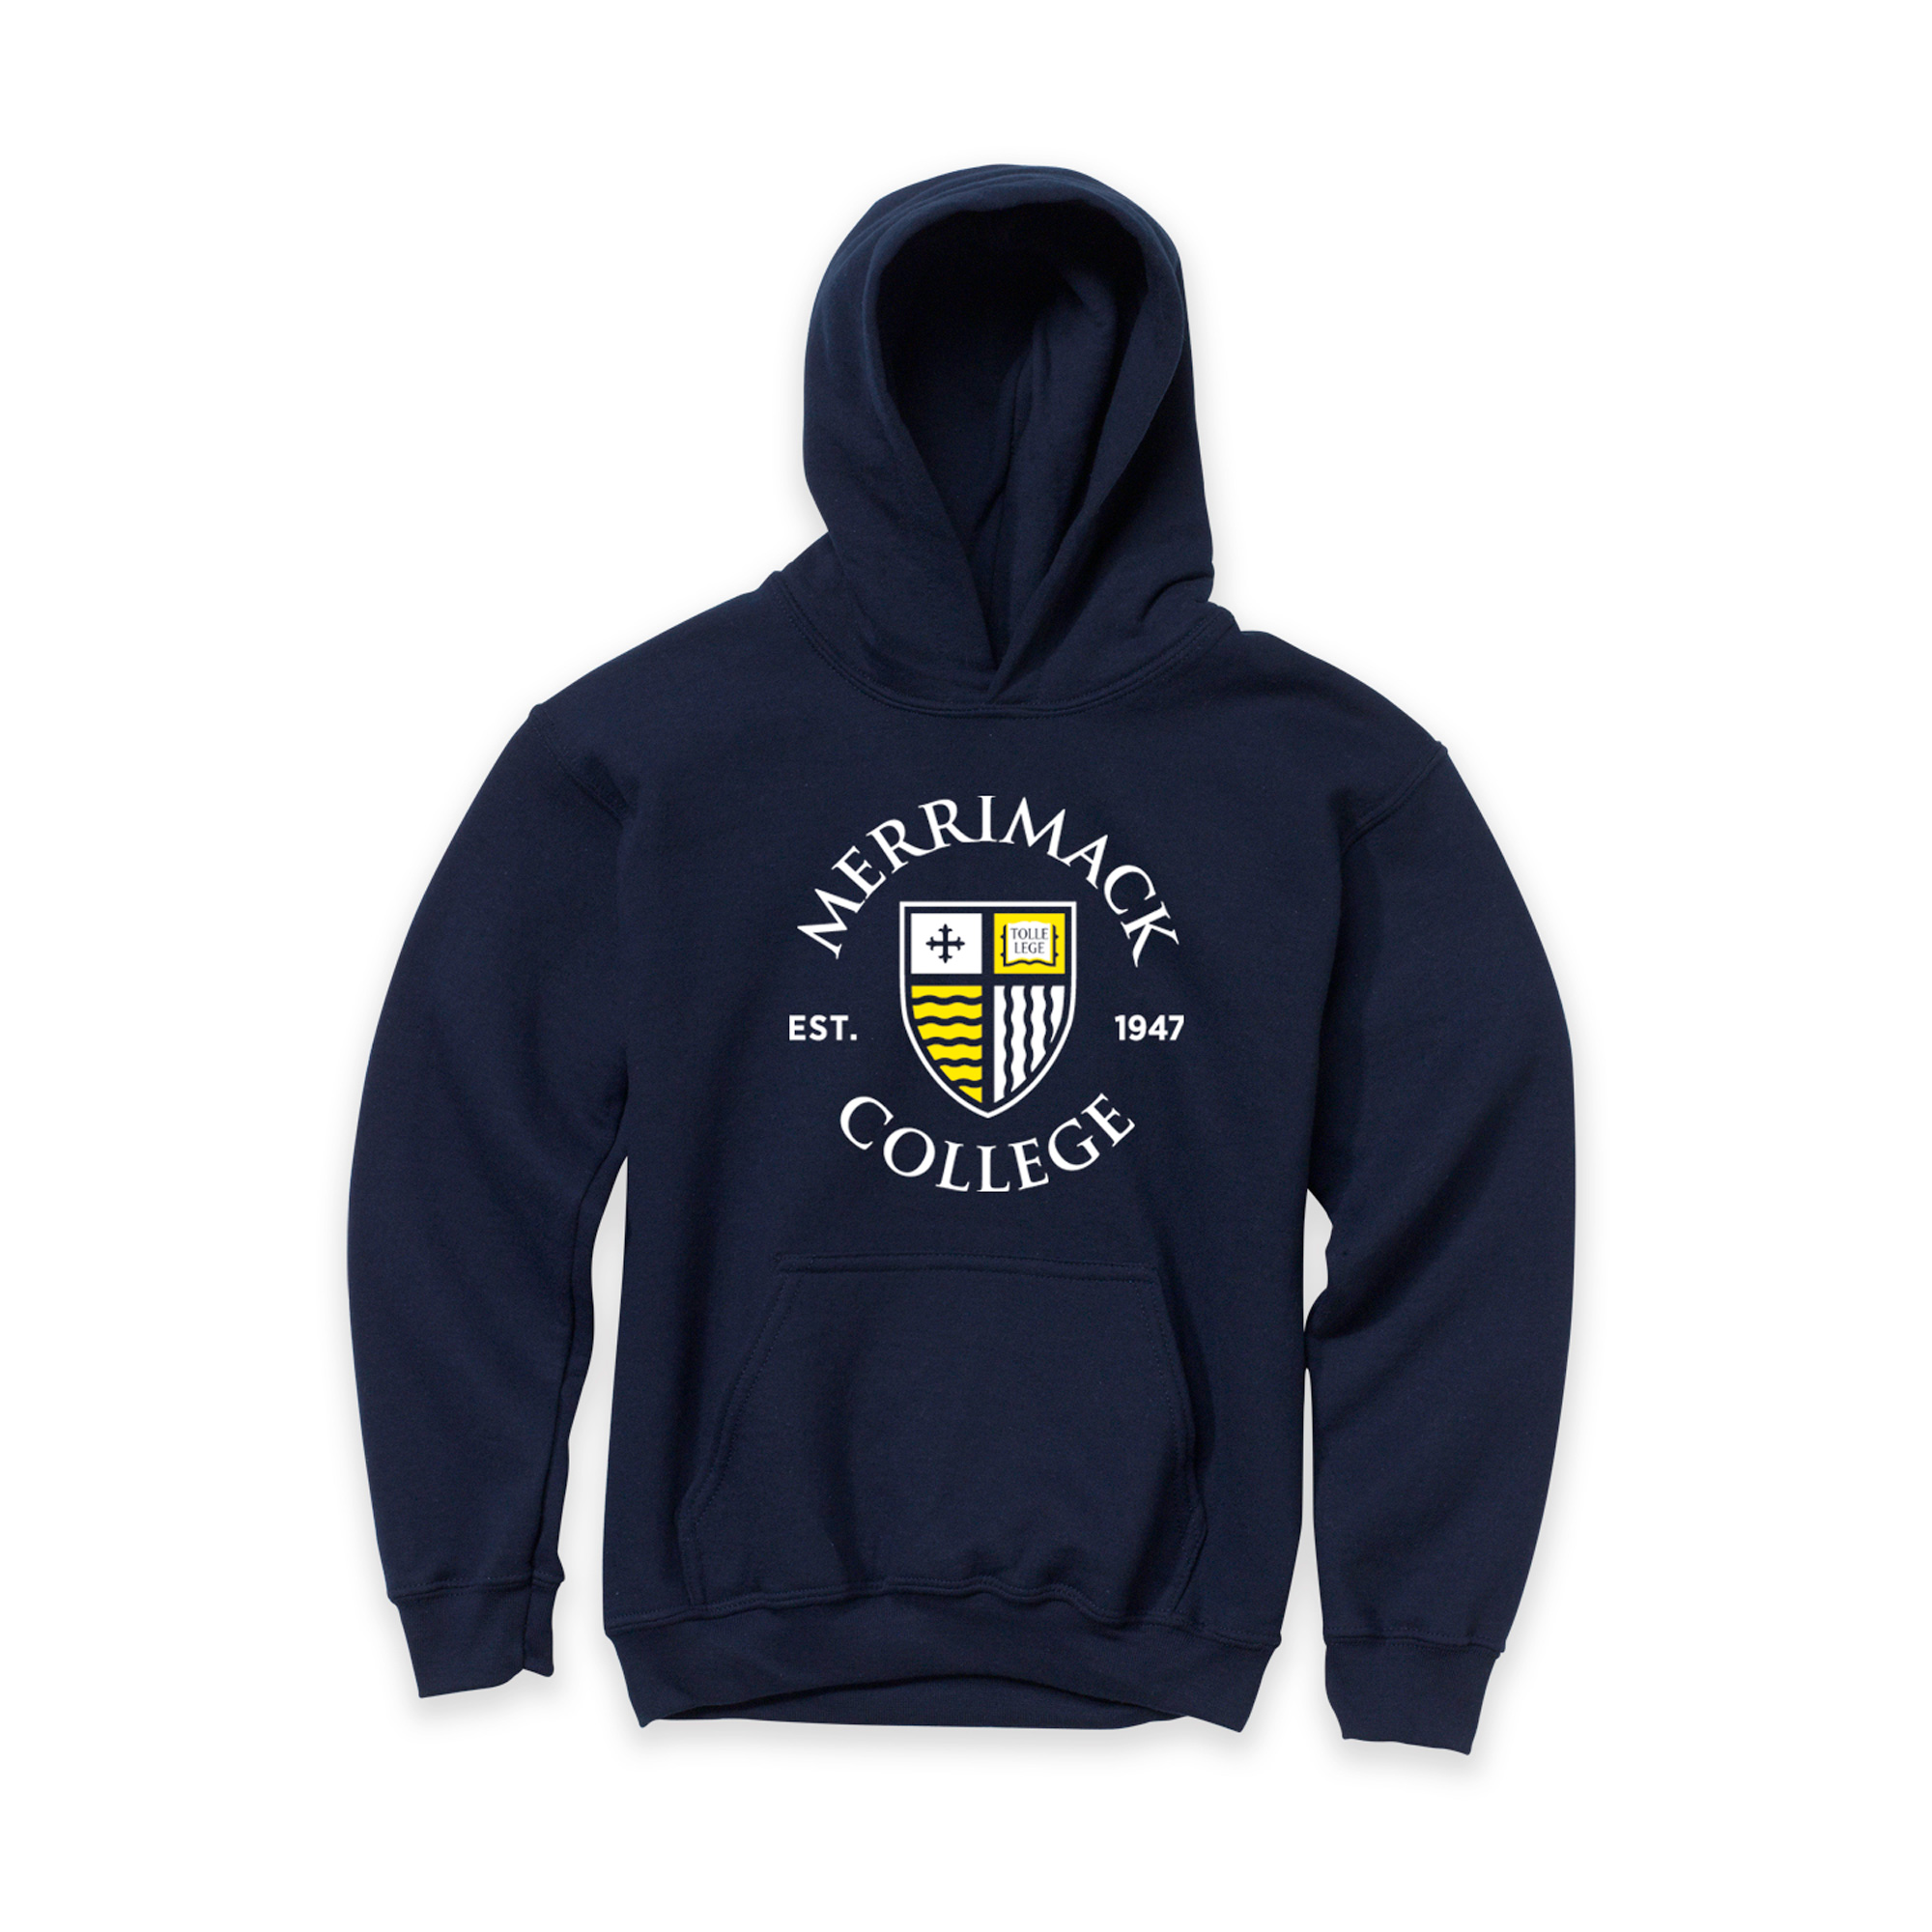 Navy Youth Hoodie